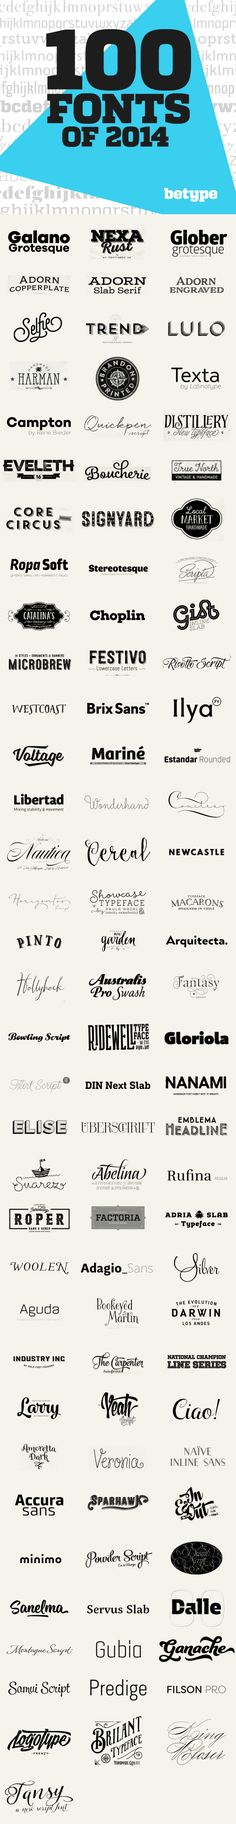 100 Best Fonts of 2014. Links at the bottom of the website www.lab333.com…